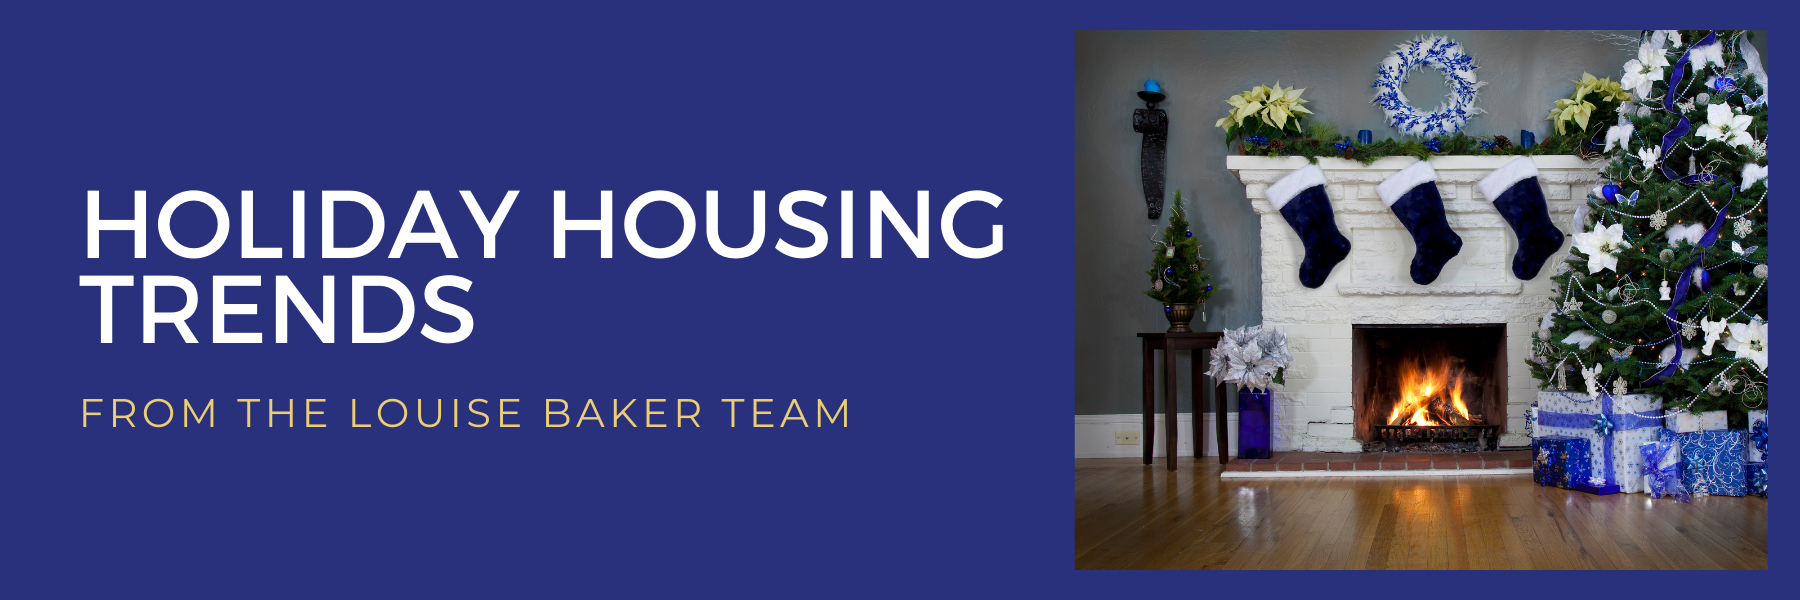 Holiday Housing Trends with The Louise Baker Team